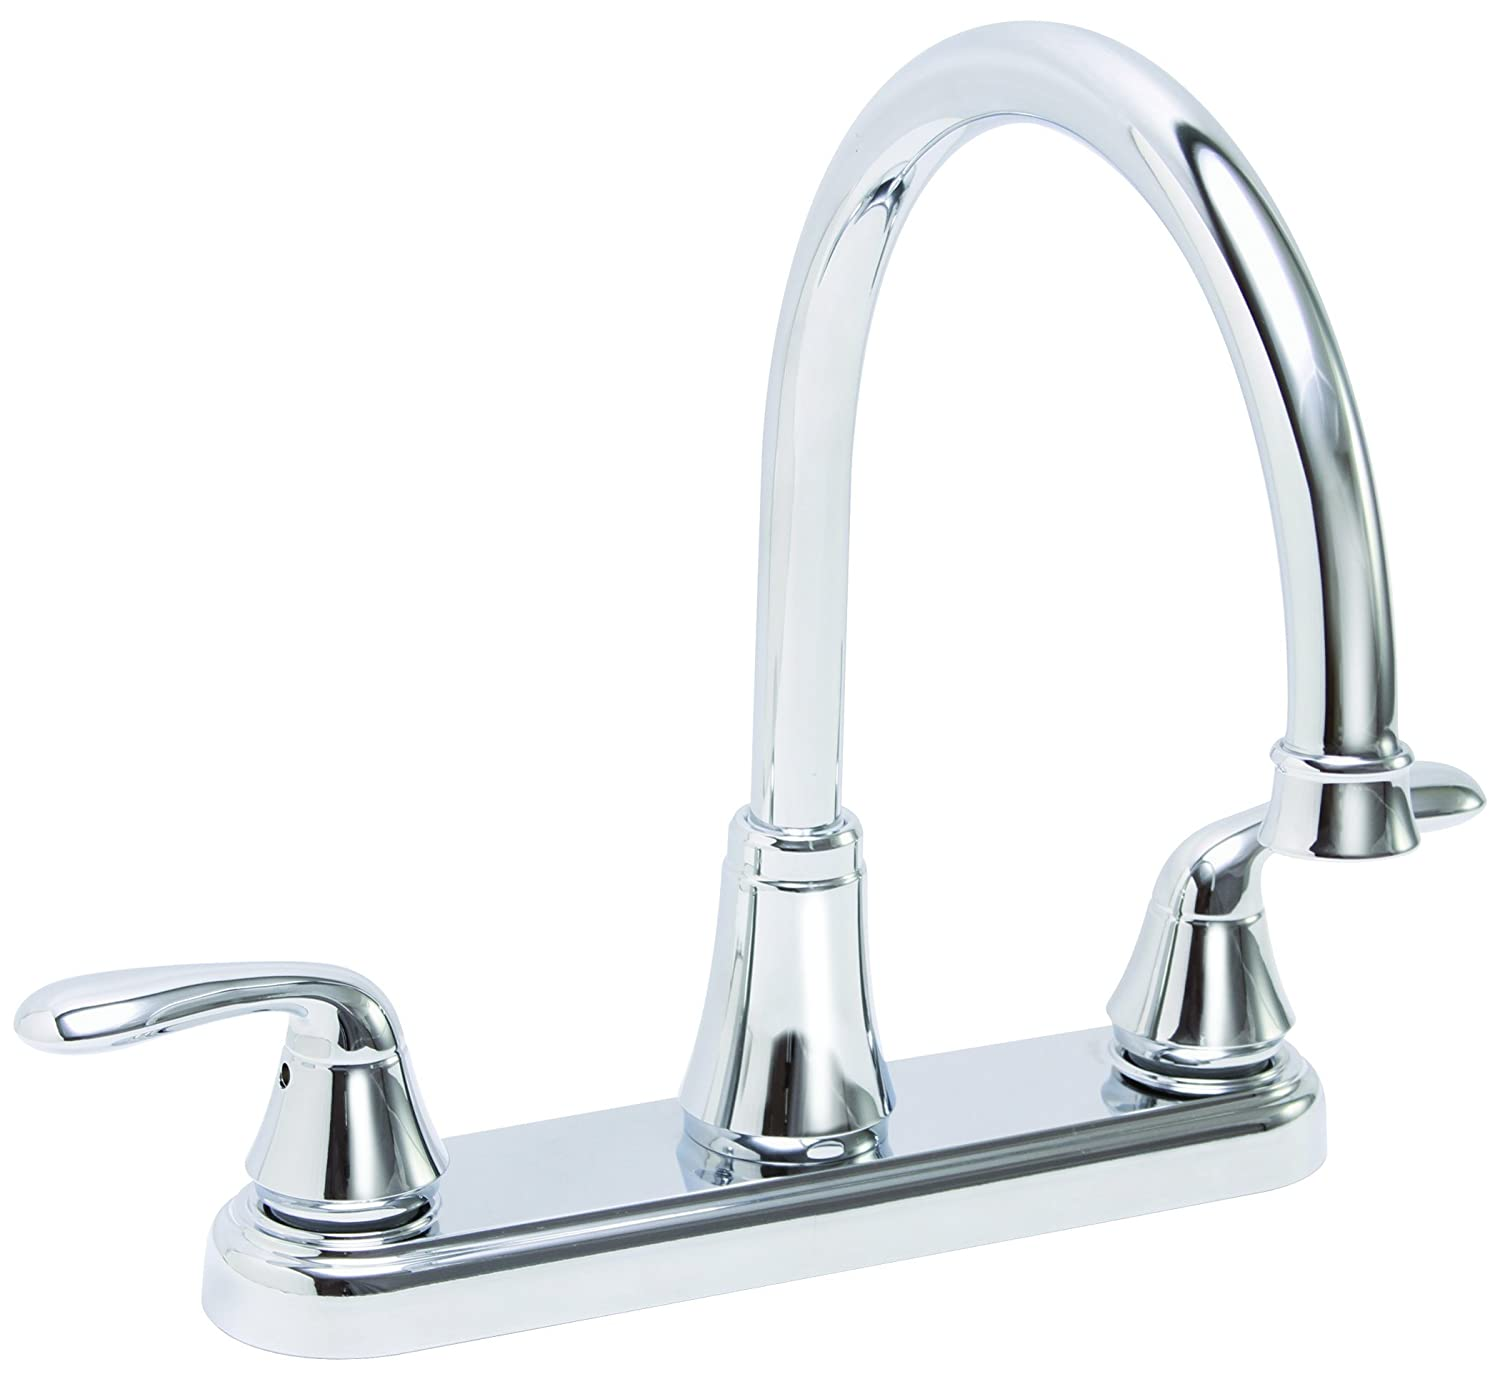 Premier 126965 Waterfront Kitchen Faucet With Two Handles, Chrome ...